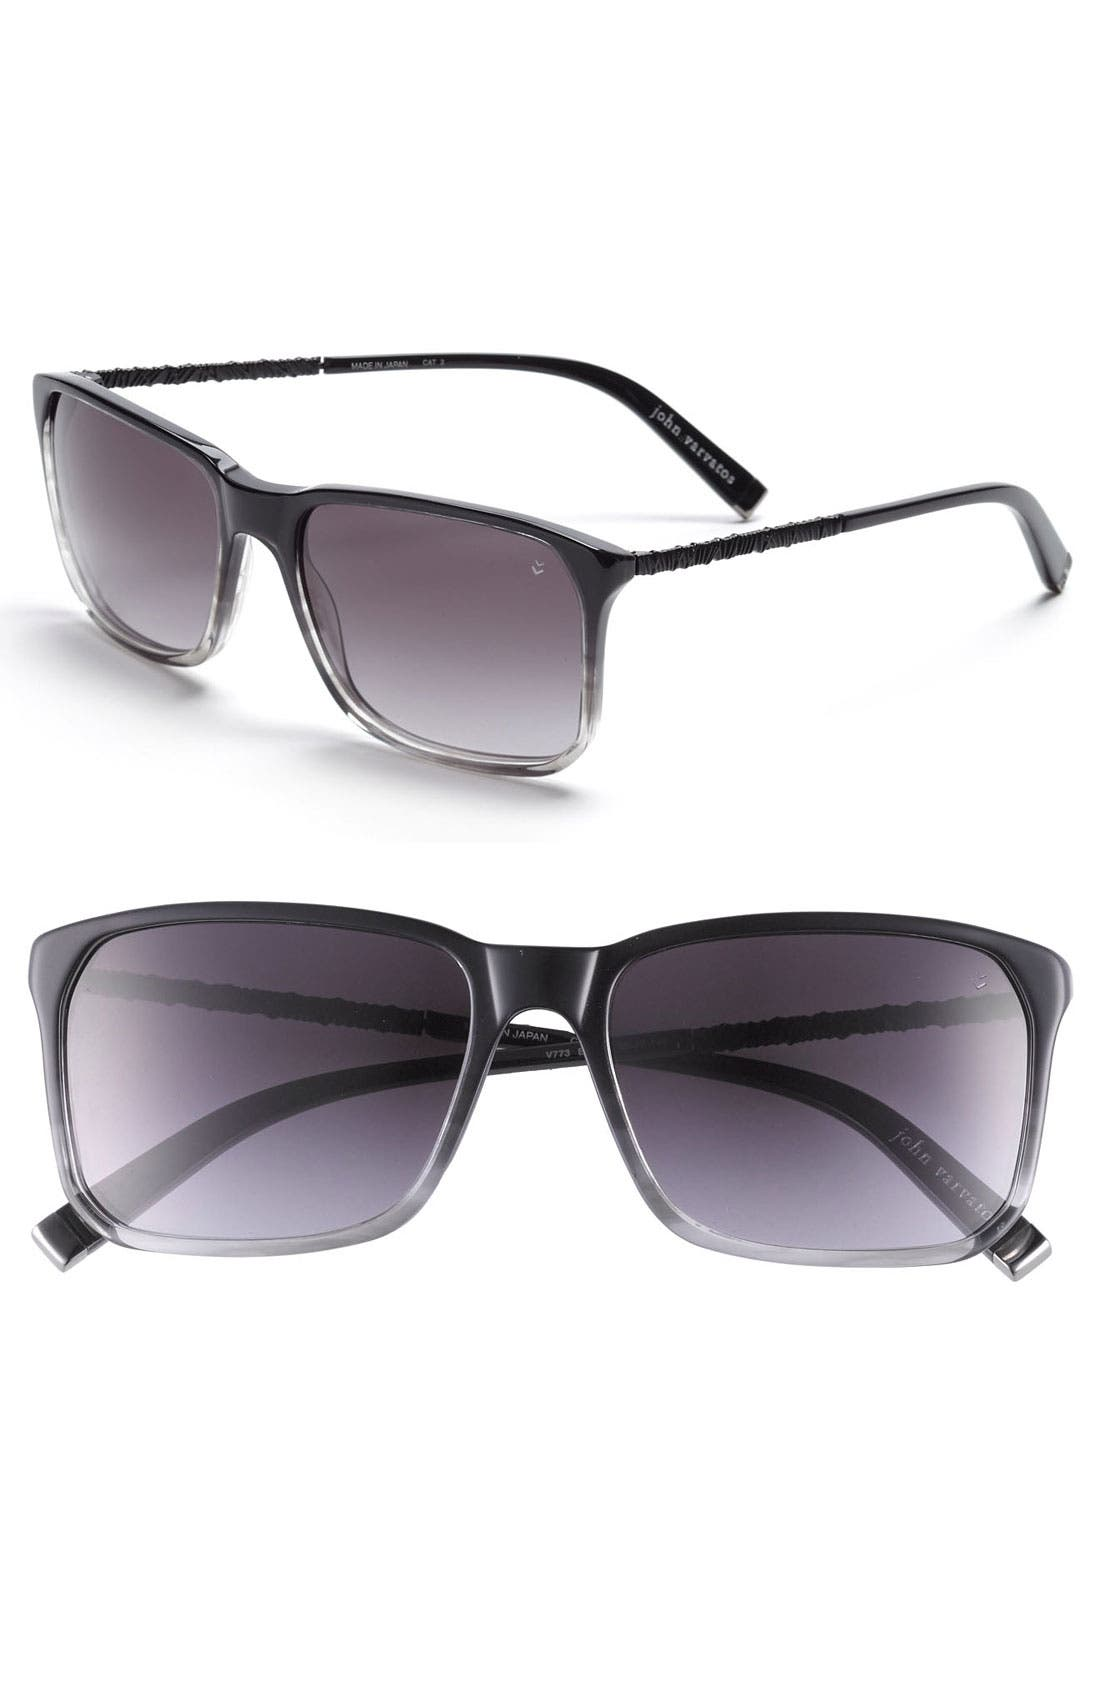 Main Image - John Varvatos Collection 56mm Sunglasses